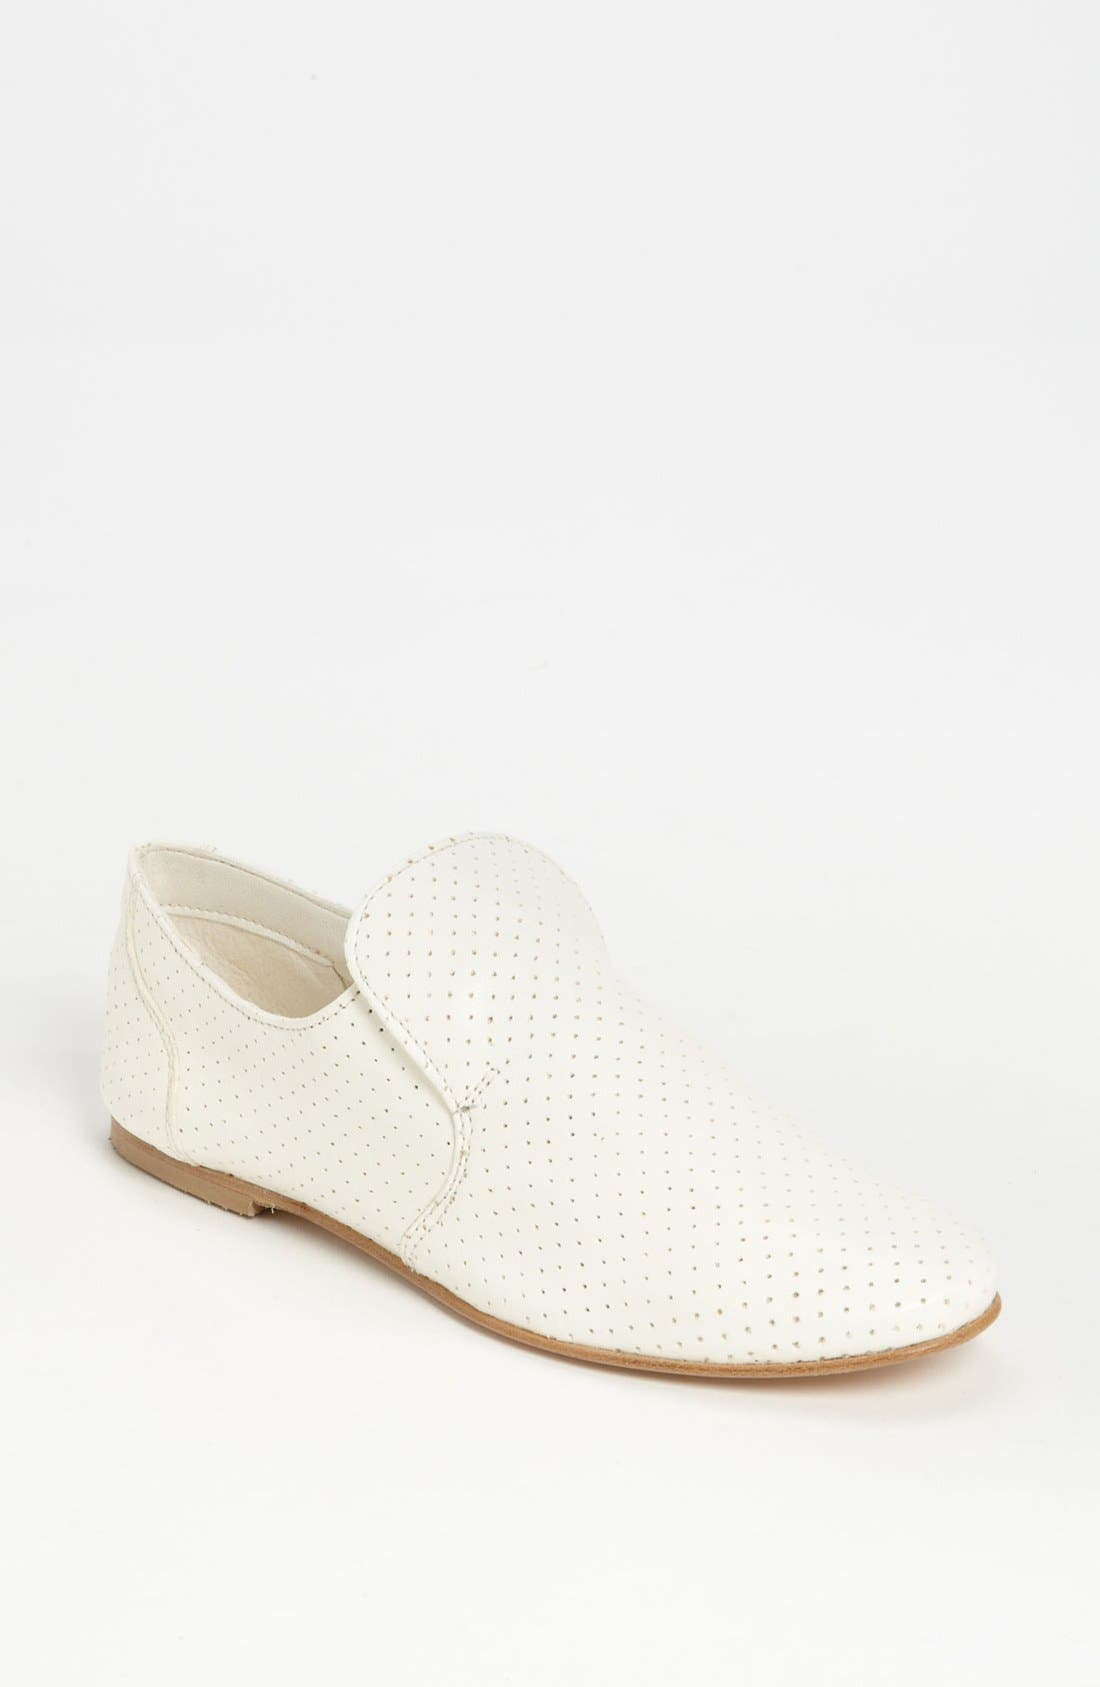 Main Image - J.P. Camps Slip-On